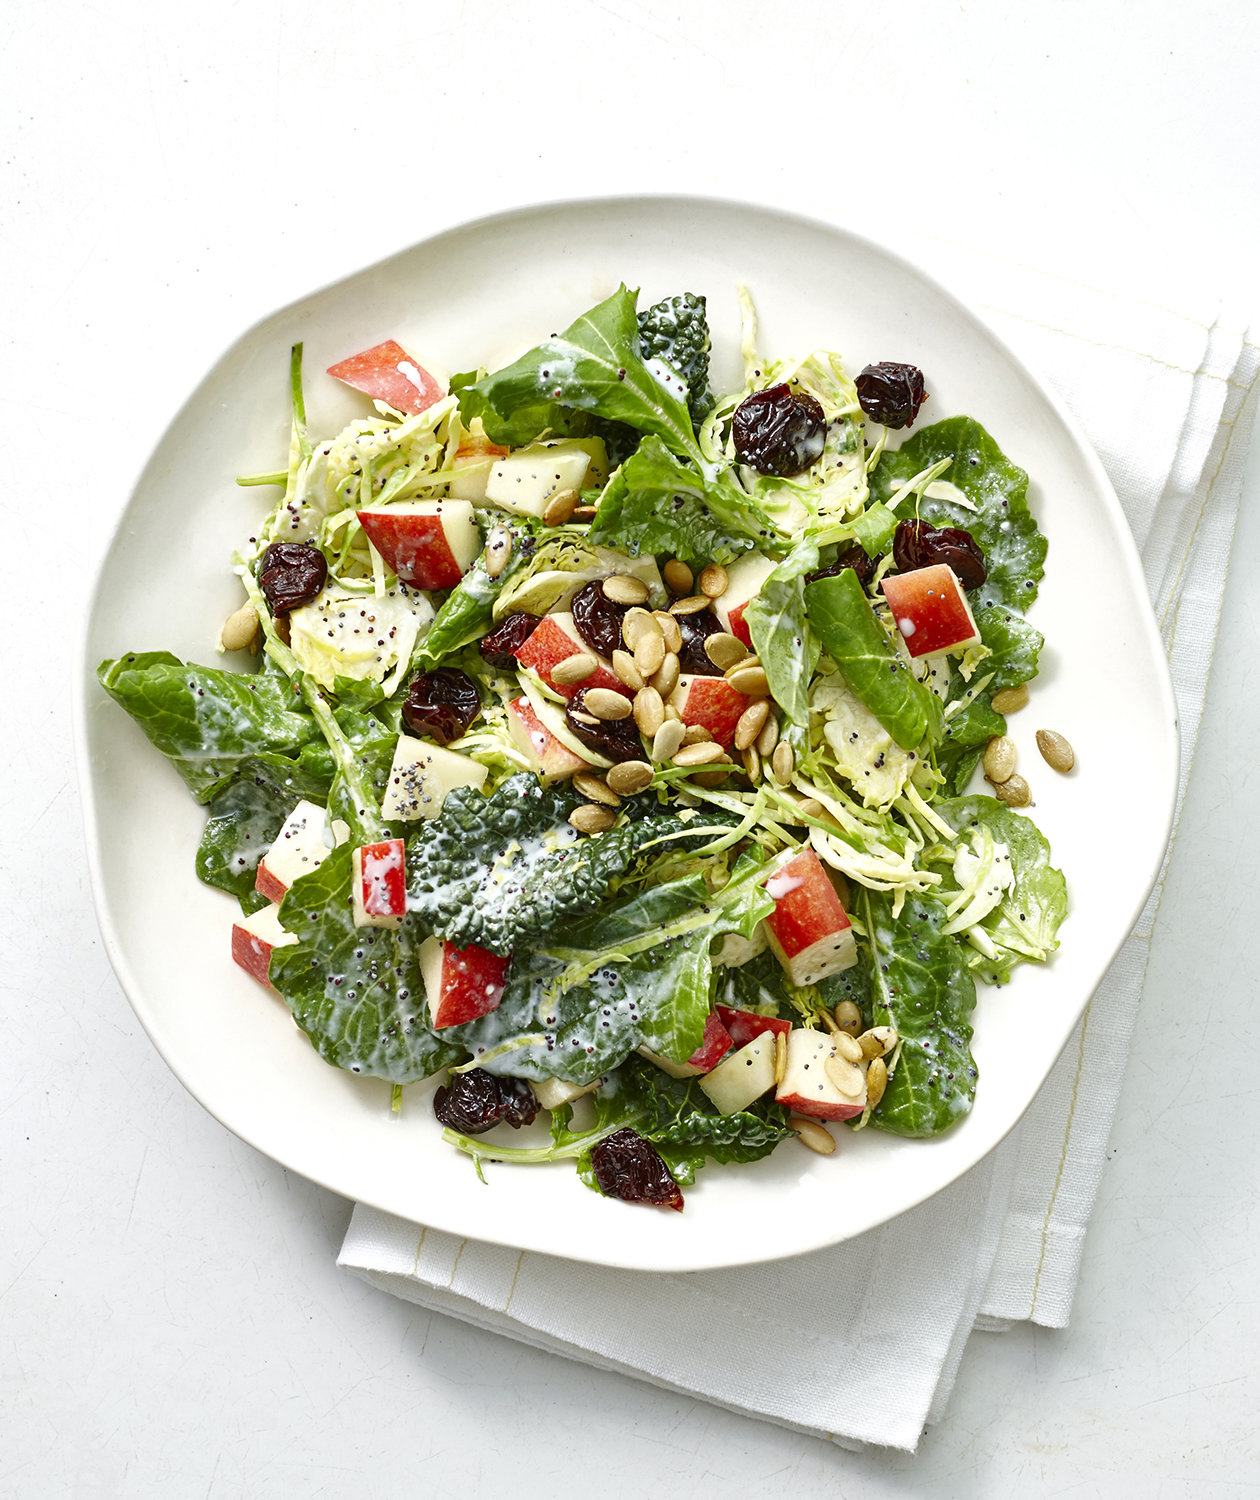 brussels-sprouts-kale-salad-poppyseed-dressing